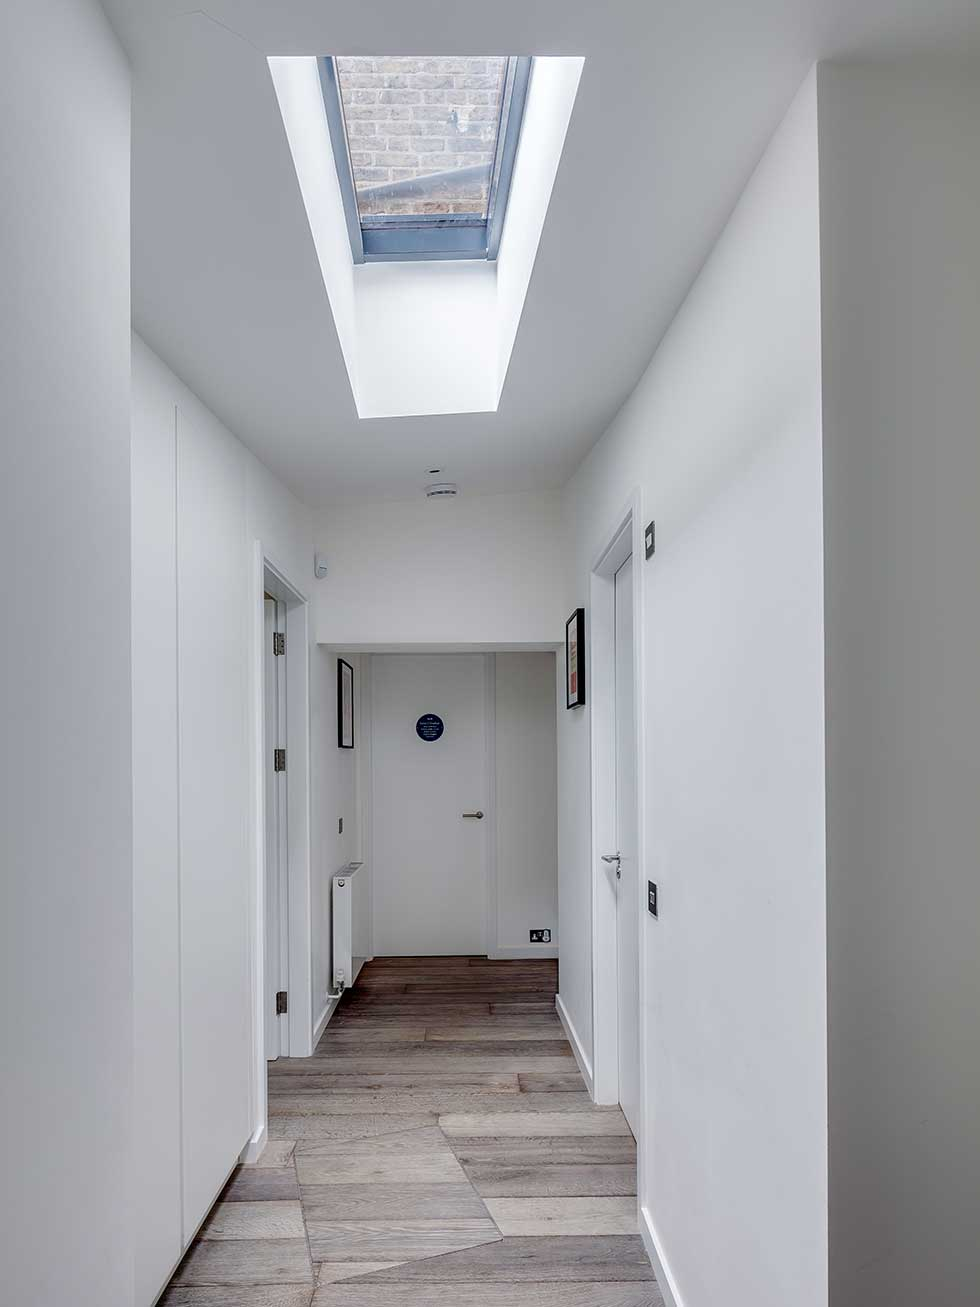 Hallway with rooflight